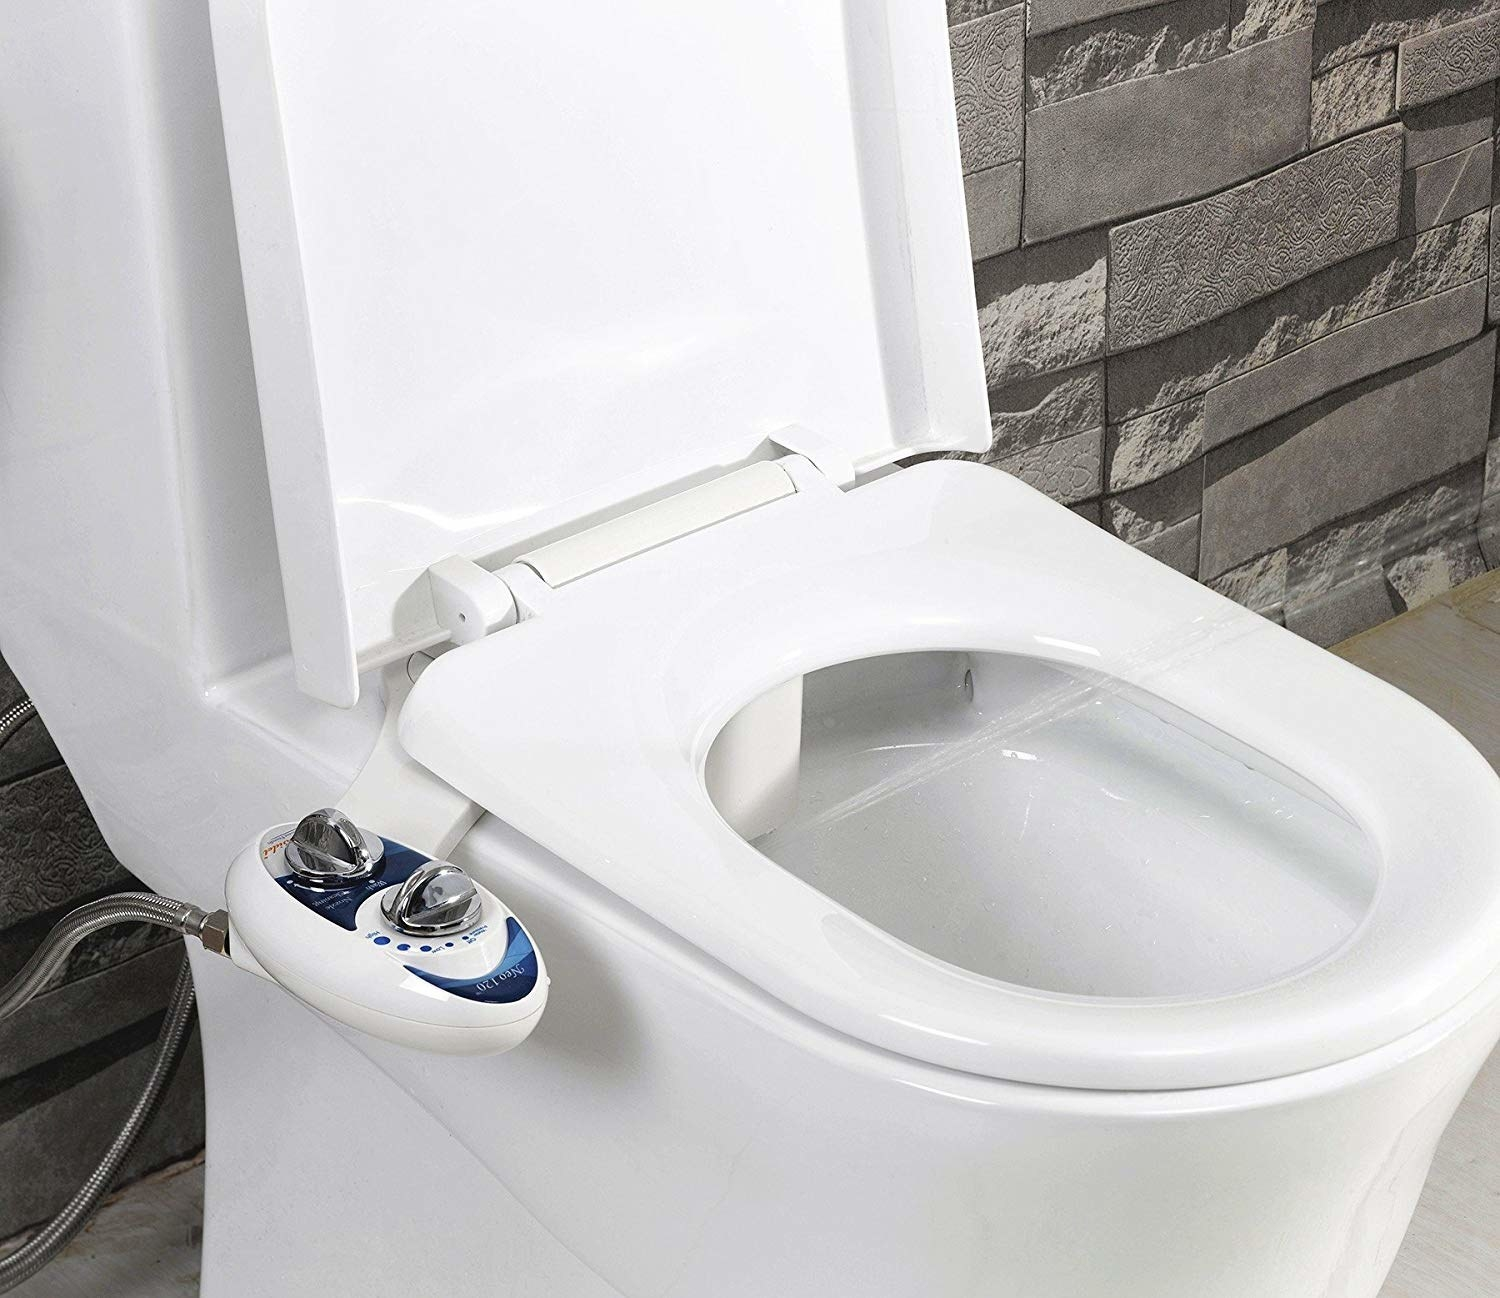 The bidet controls on the side of the toilet, and a jet of water coming out of the bidet inside the bowl